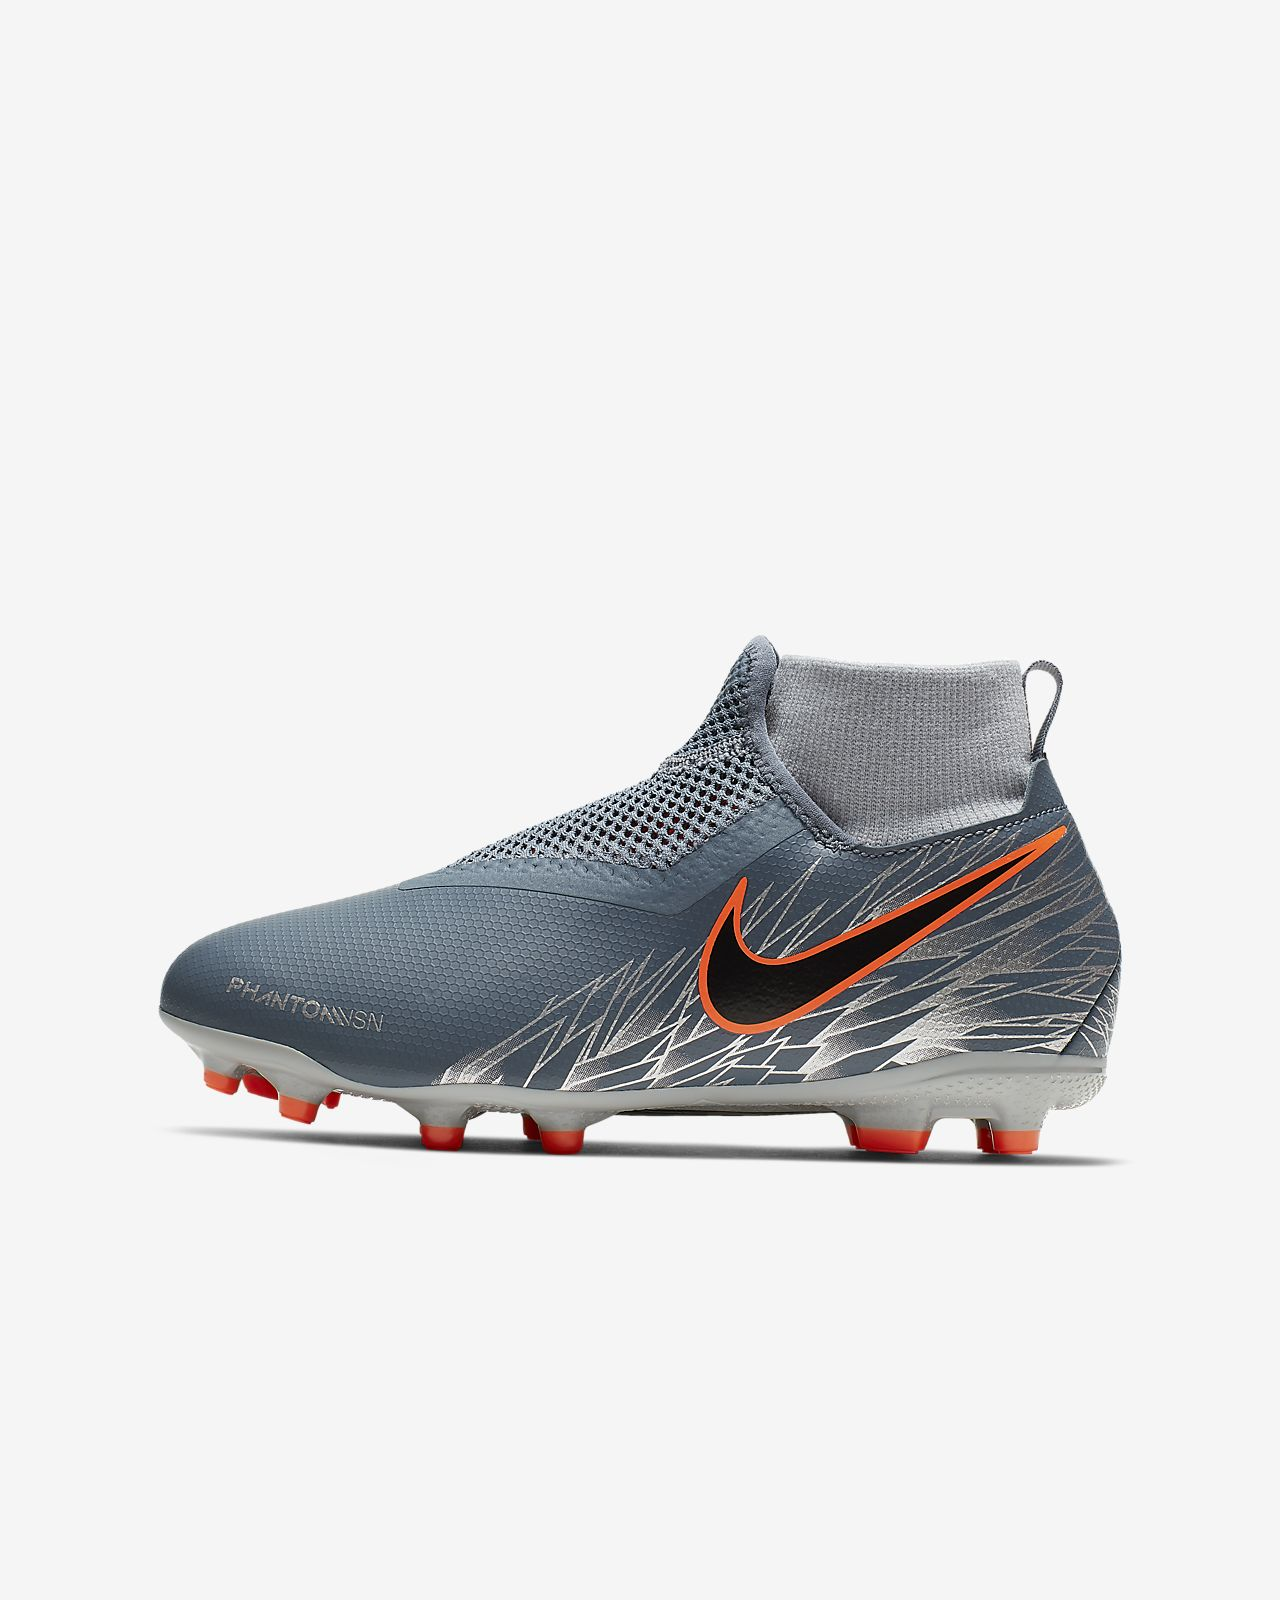 Nike Jr. Phantom Vision Academy Dynamic Fit MG Little/Big Kids' Multi-Ground Soccer Cleat